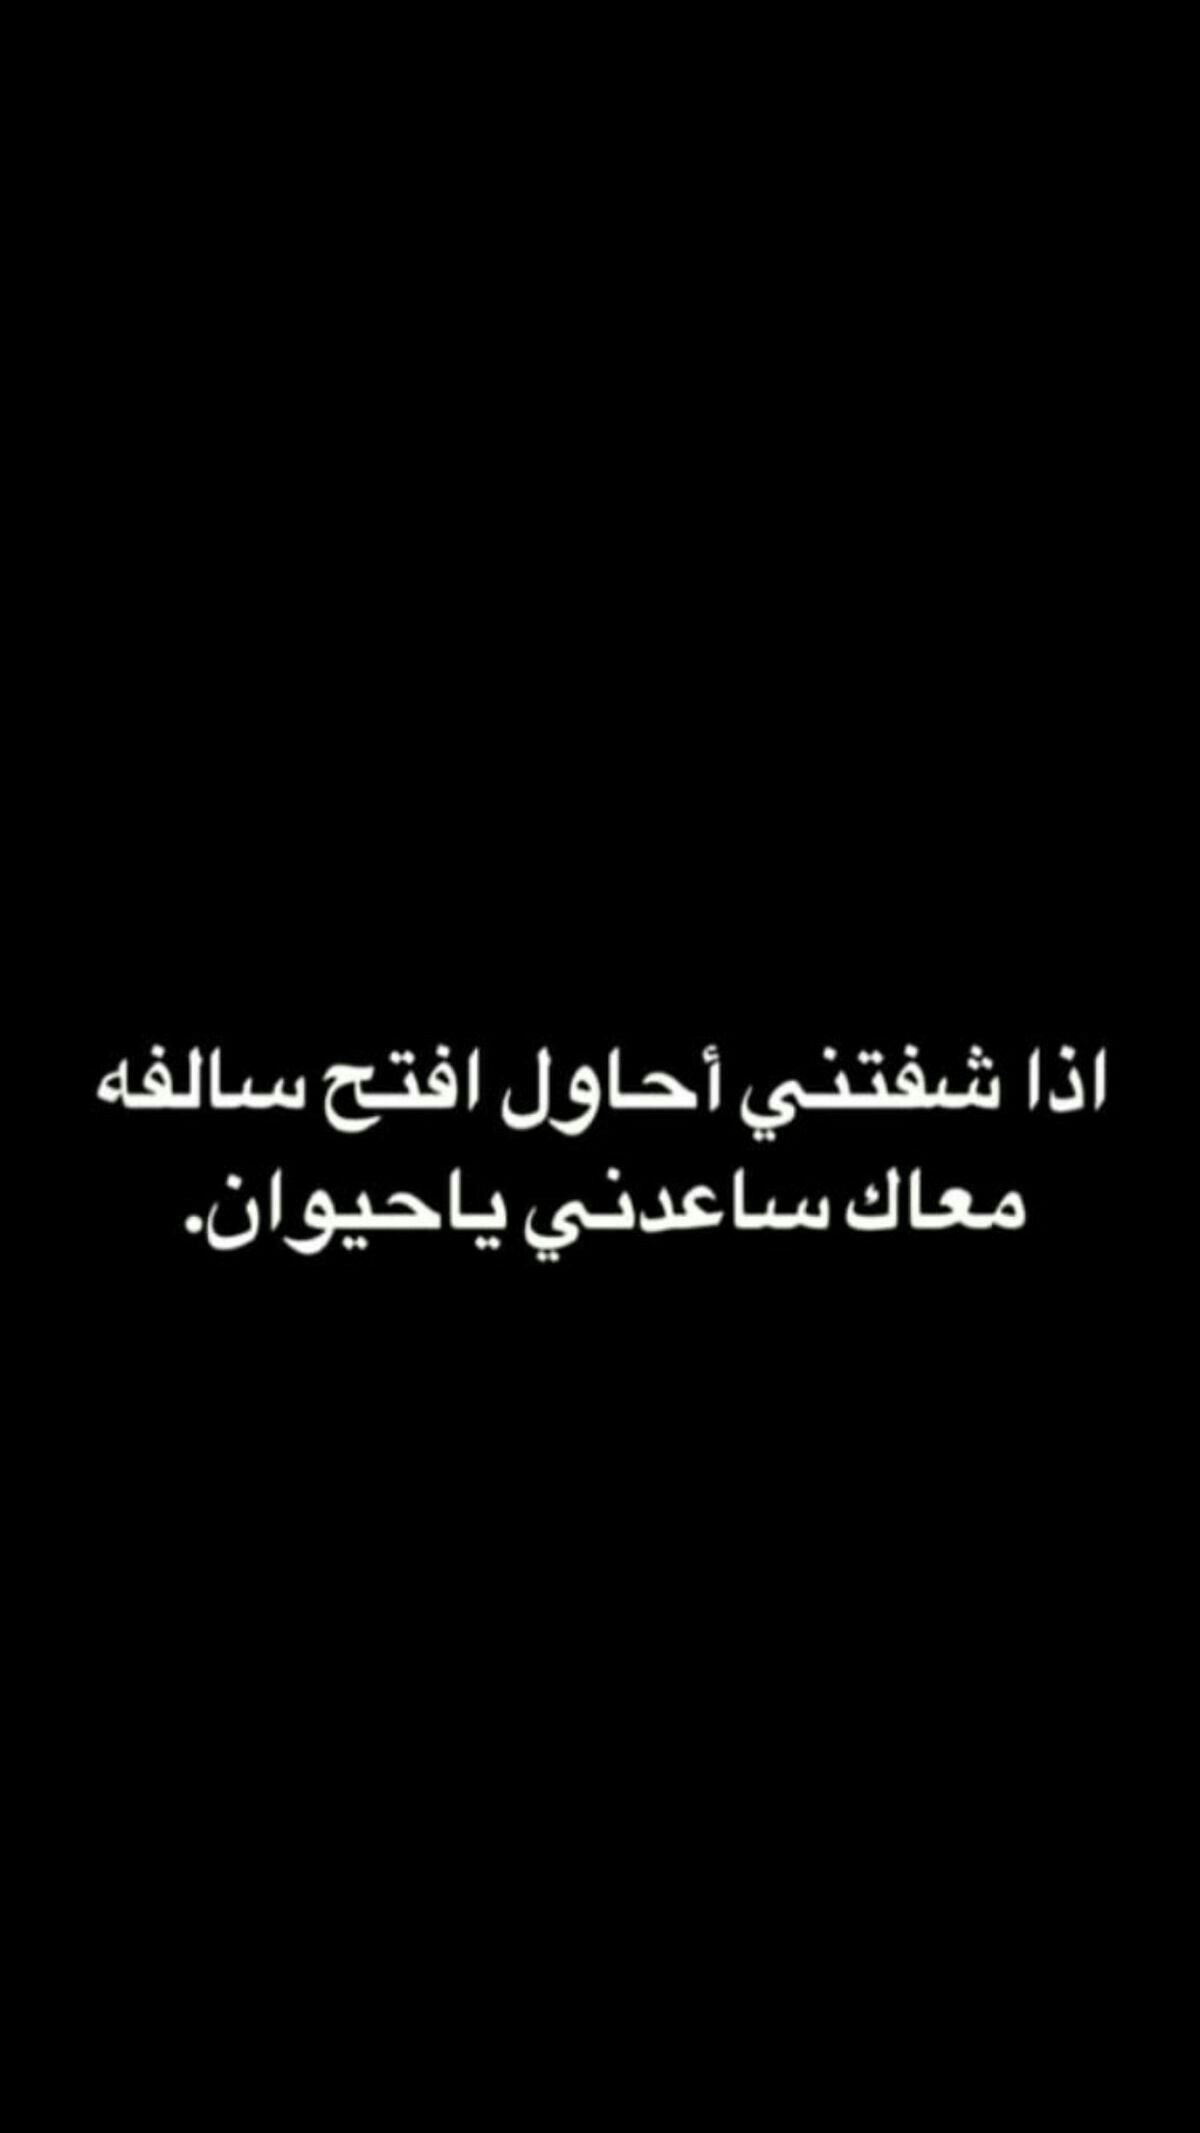 Pin By ظبيانيه On Quotes Funny Arabic Quotes Jokes Quotes Funny Quotes